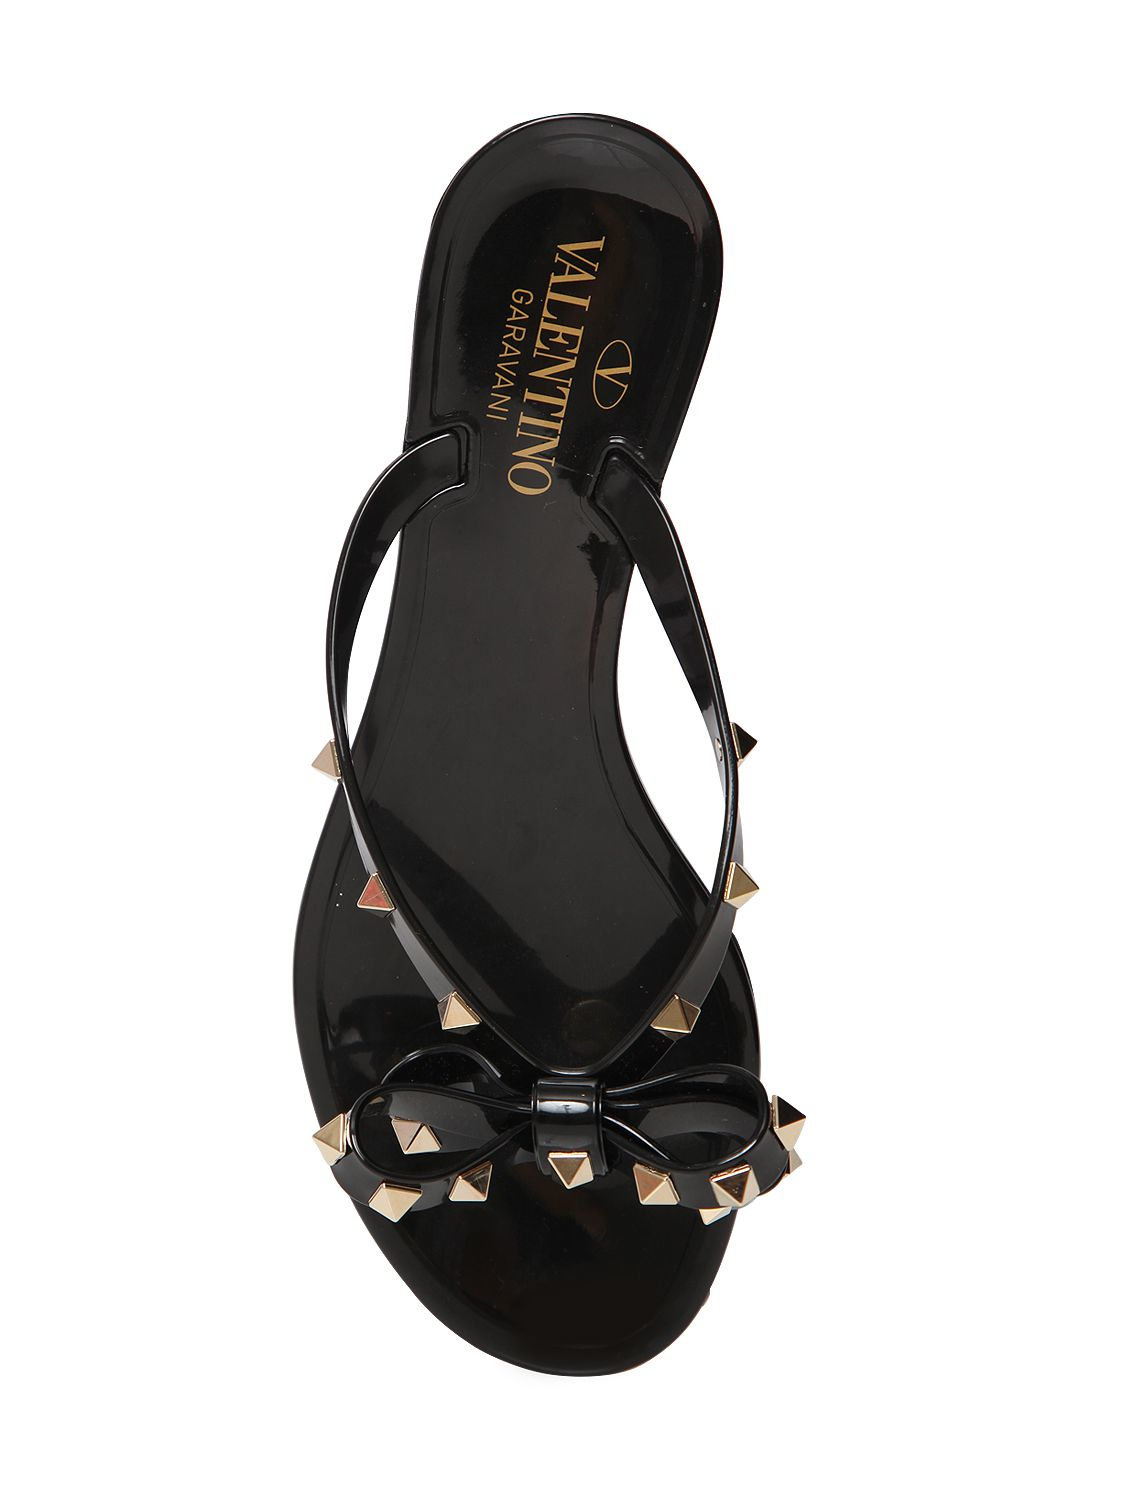 valentino rockstud pvc flip flops in black lyst. Black Bedroom Furniture Sets. Home Design Ideas